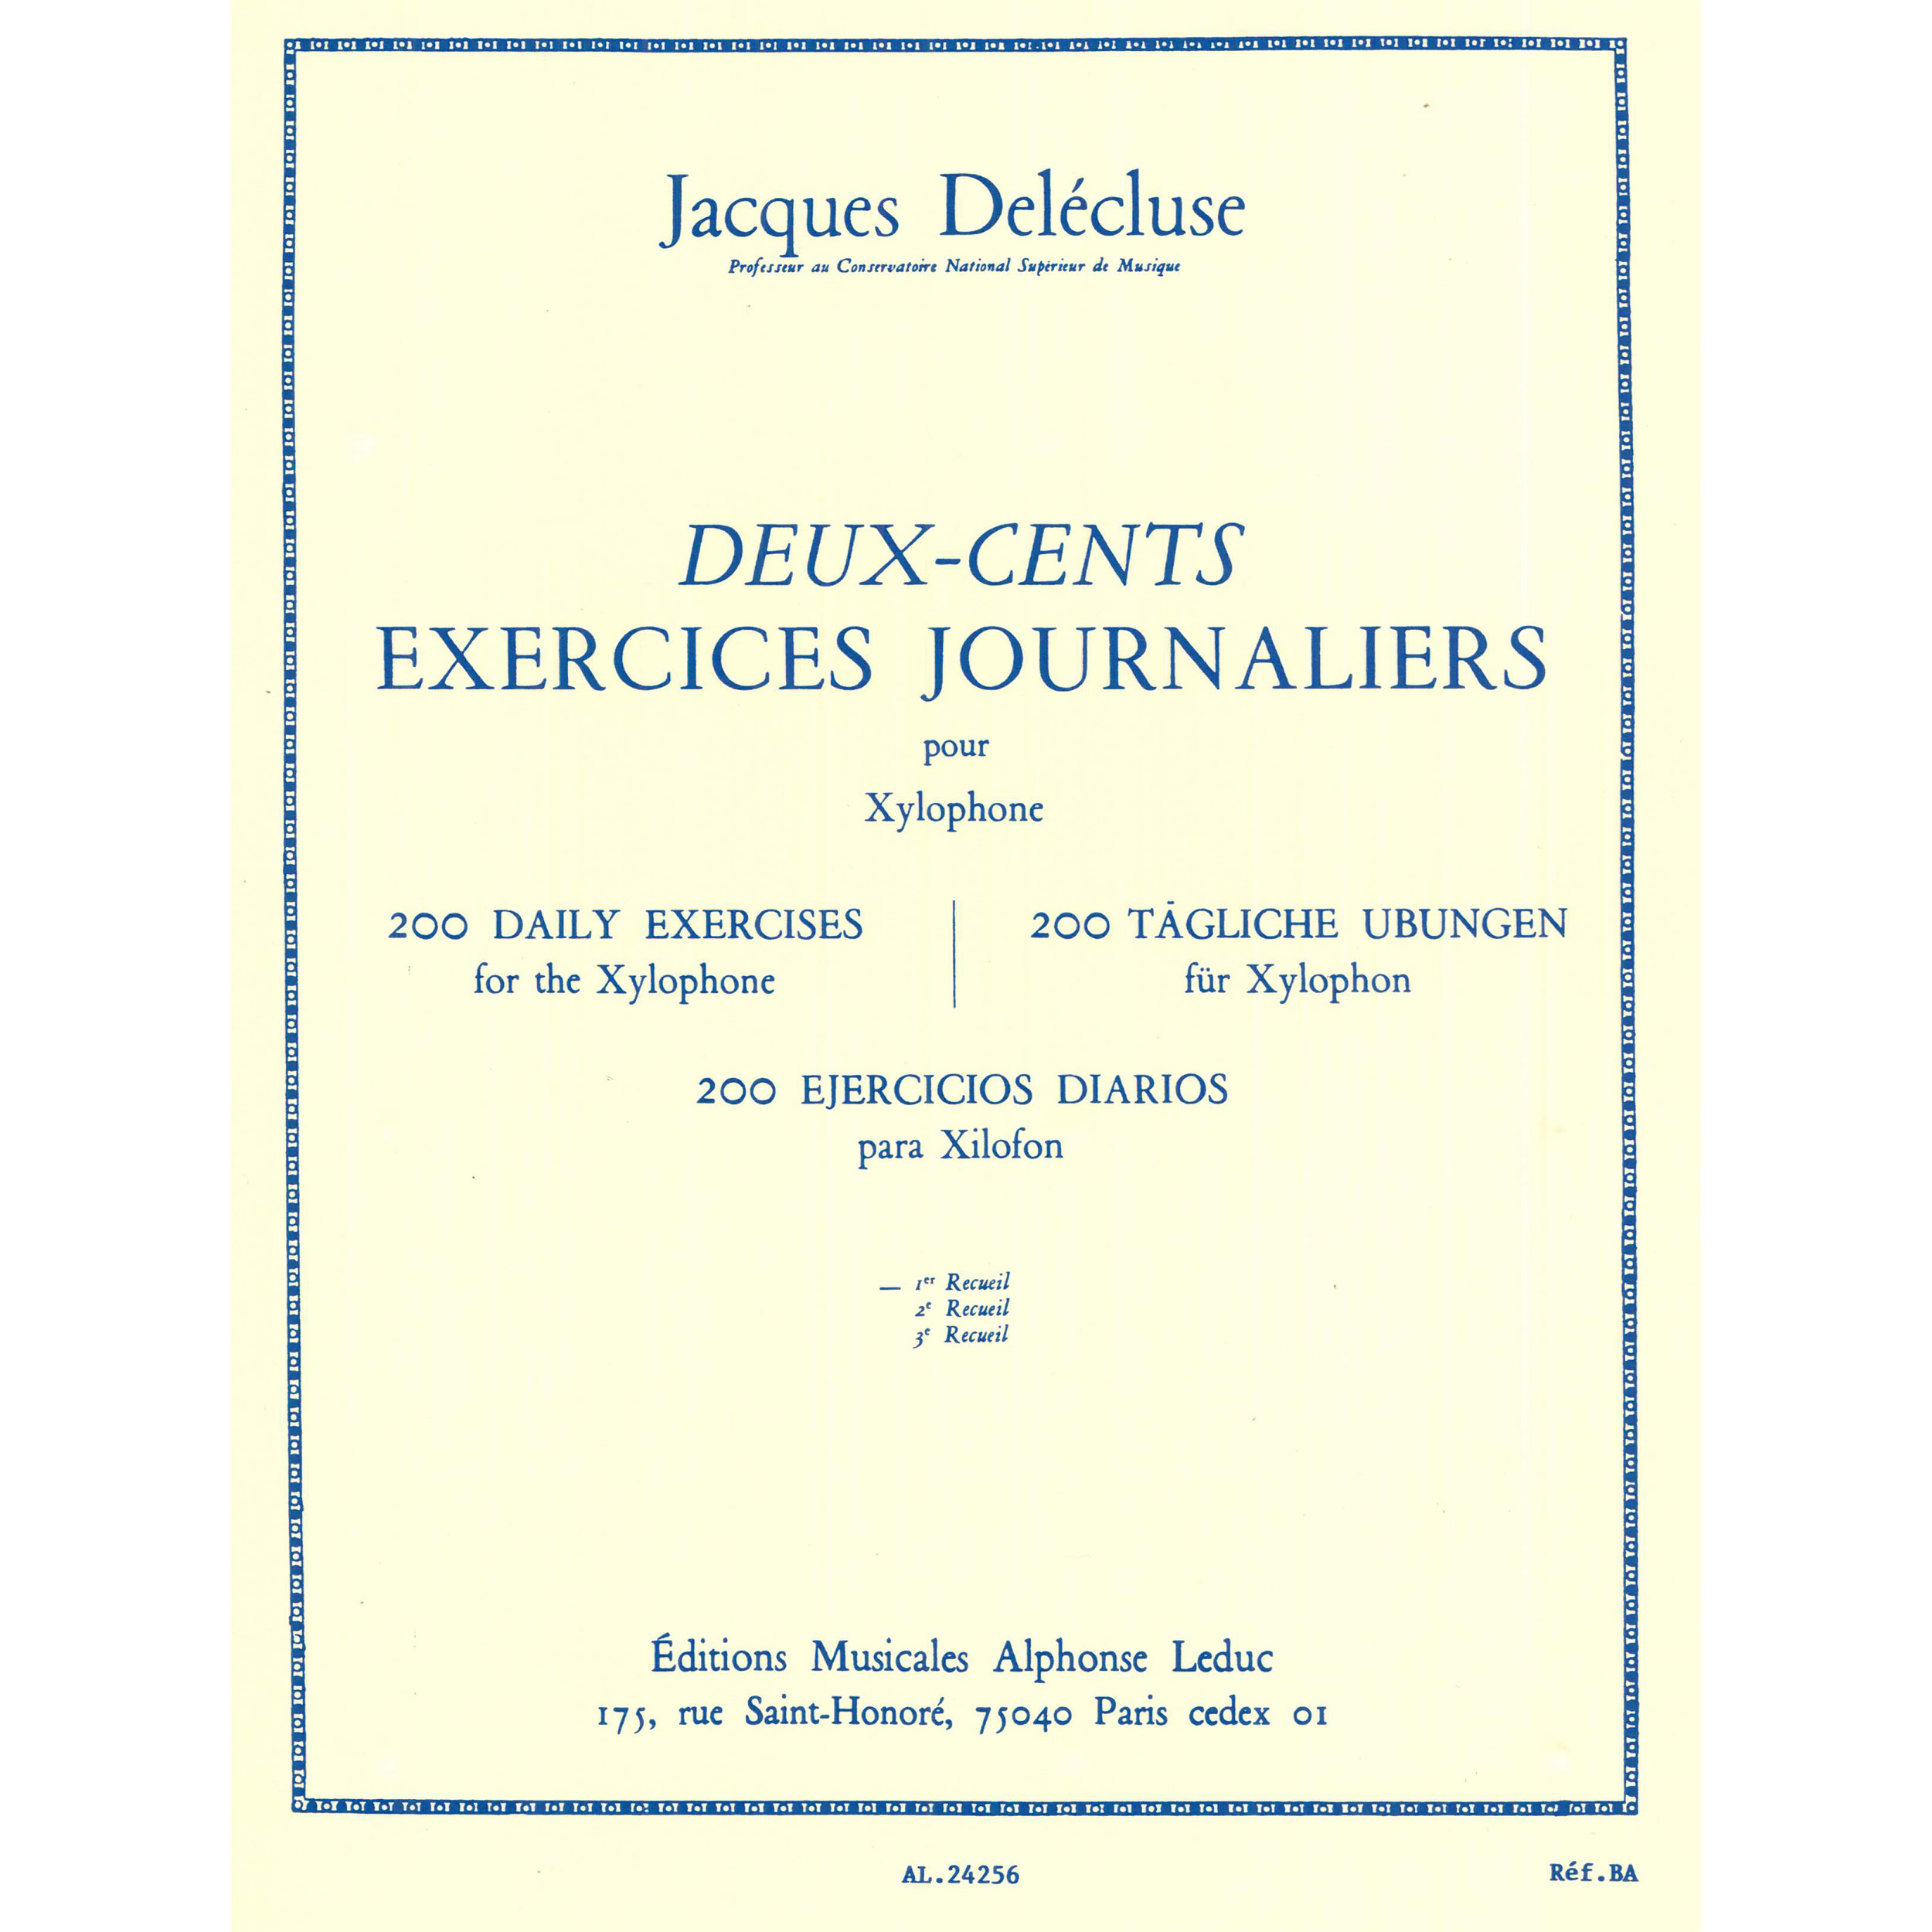 Deux-Cents Exercices Journaliers (200 Daily Exercises) for Xylophone by Jacques Delecluse